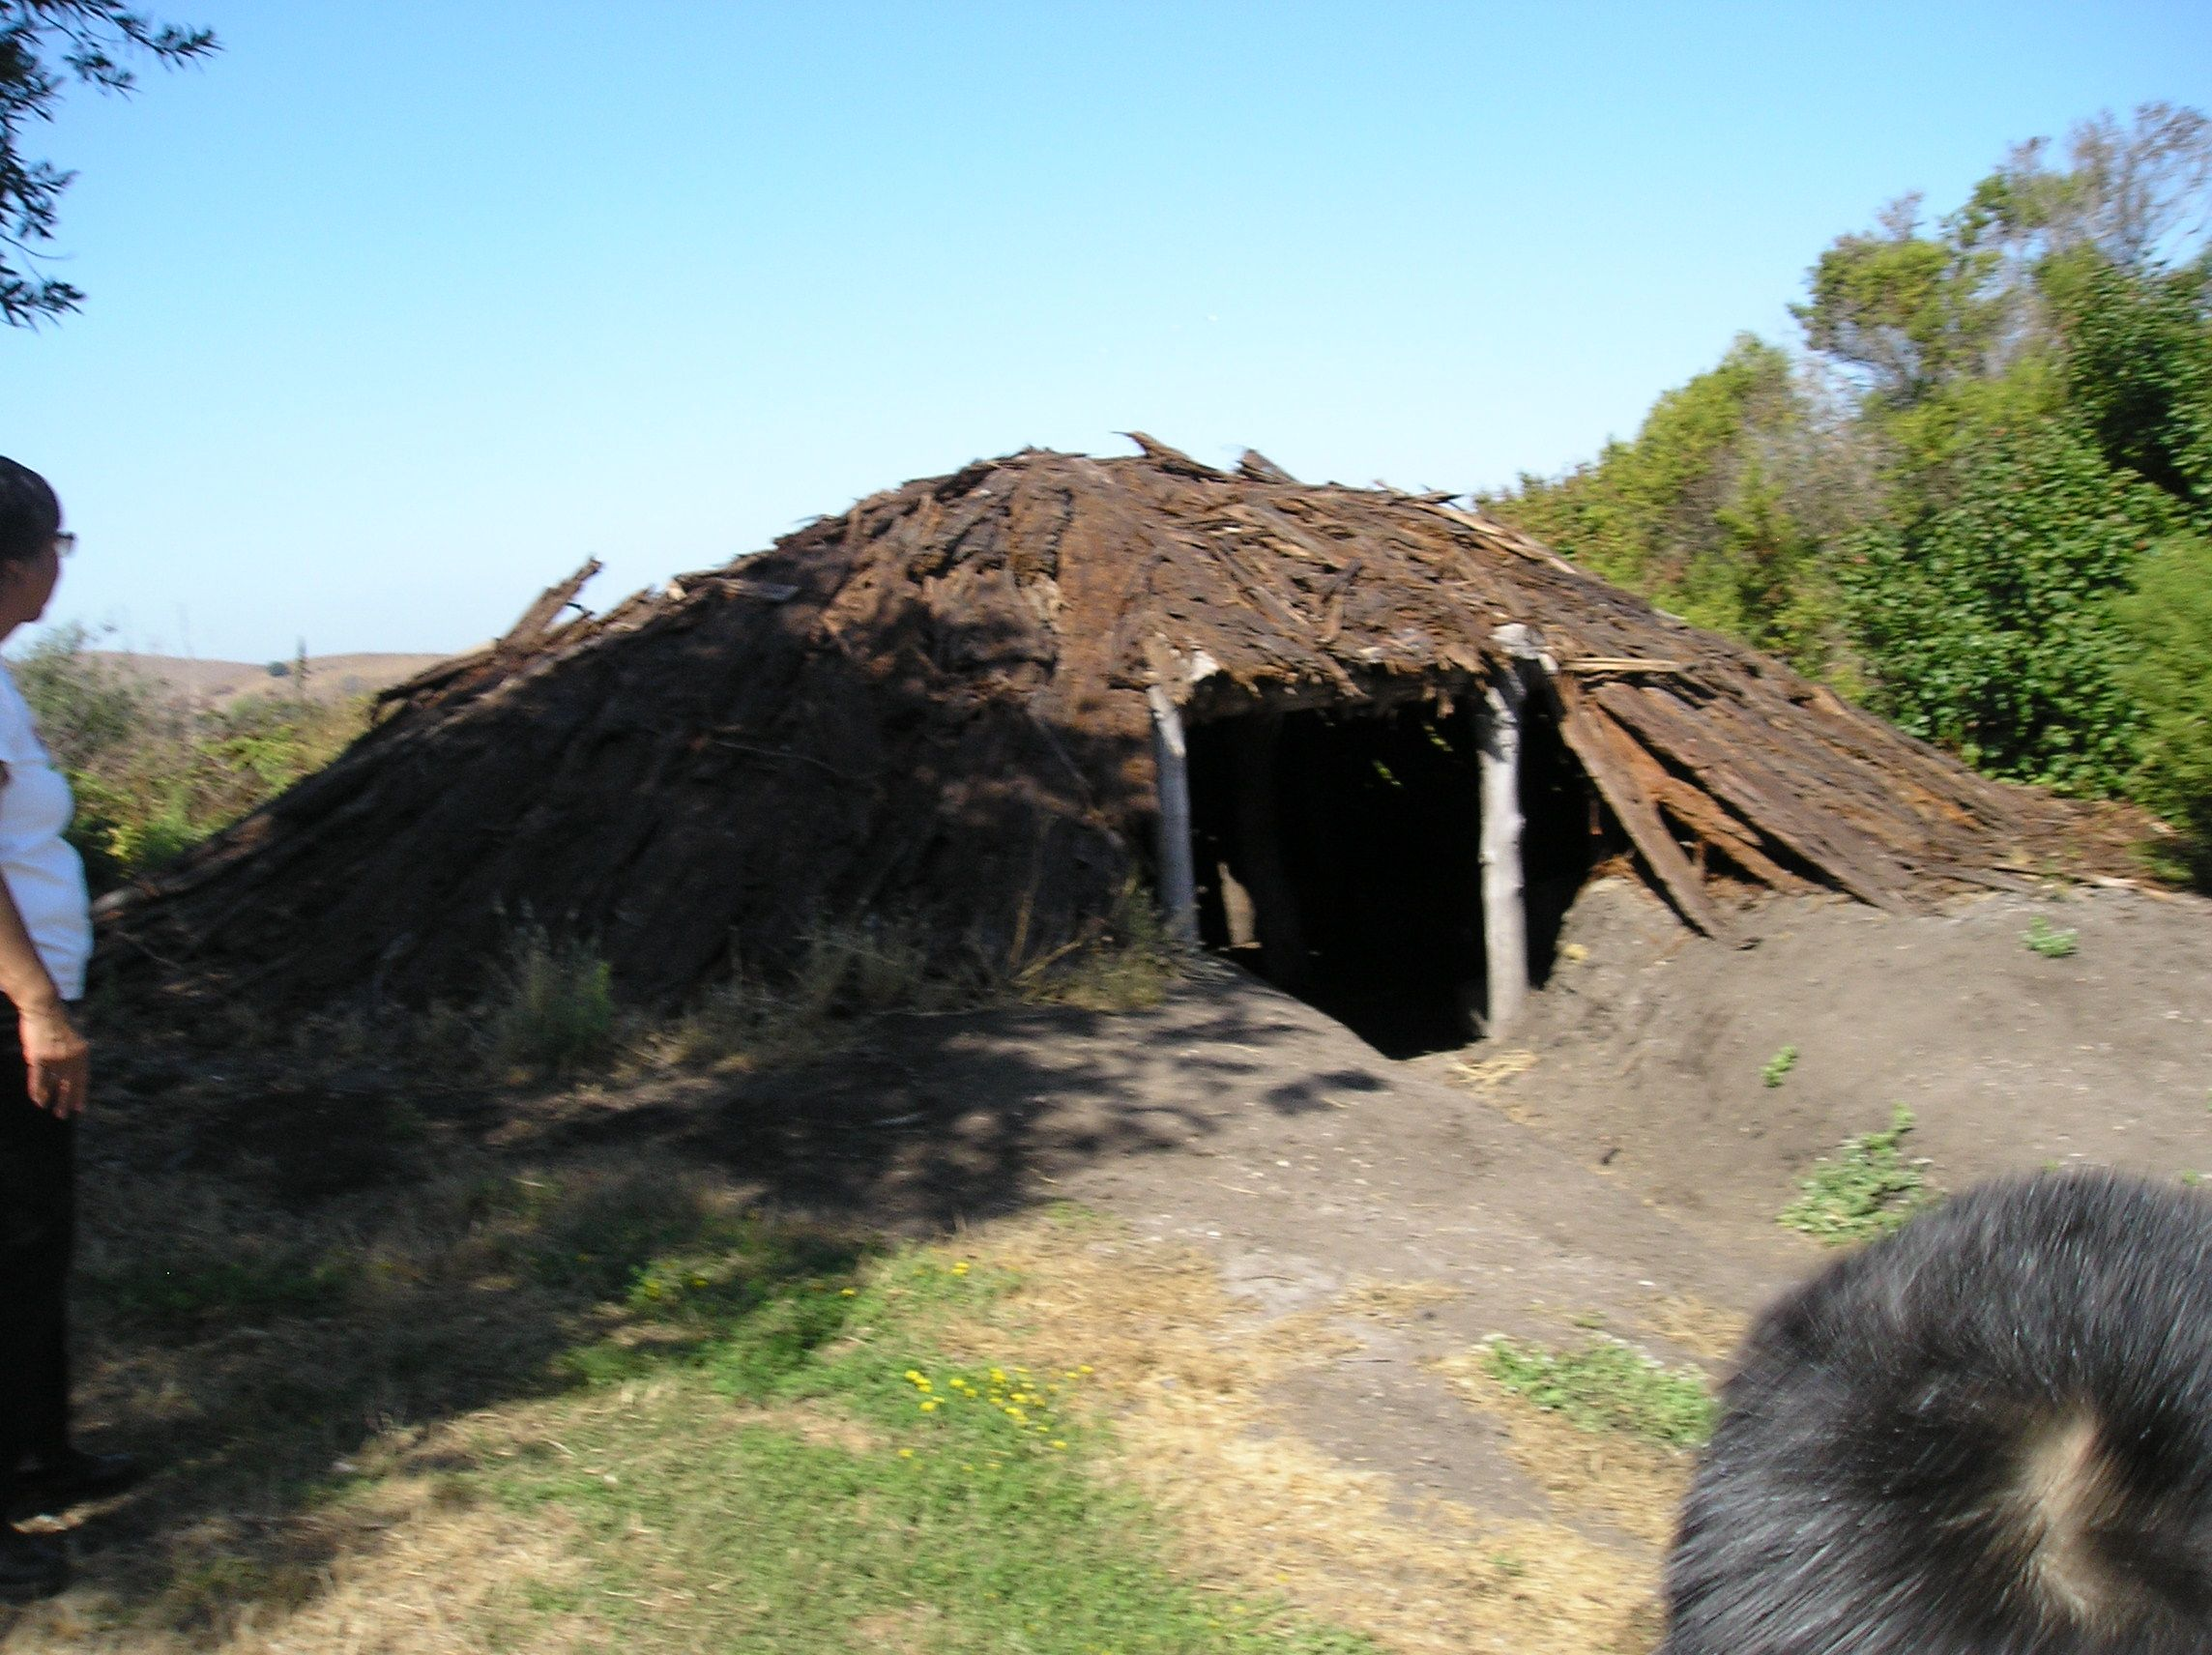 This Is An Ohlone Pit House There Is A Hole At The Top To Let In